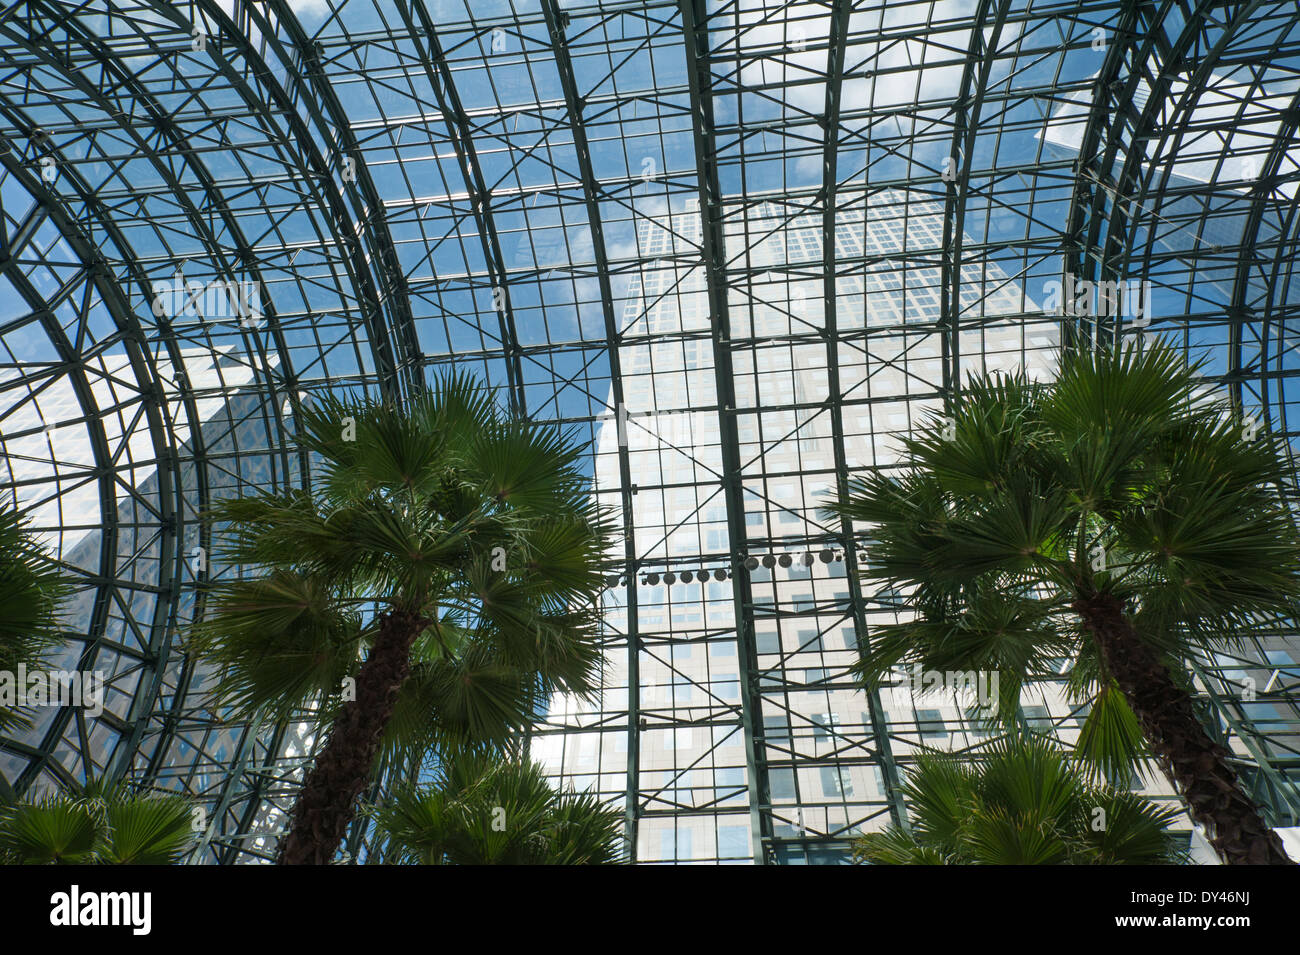 the glass ceiling and palm trees of the winter garden at